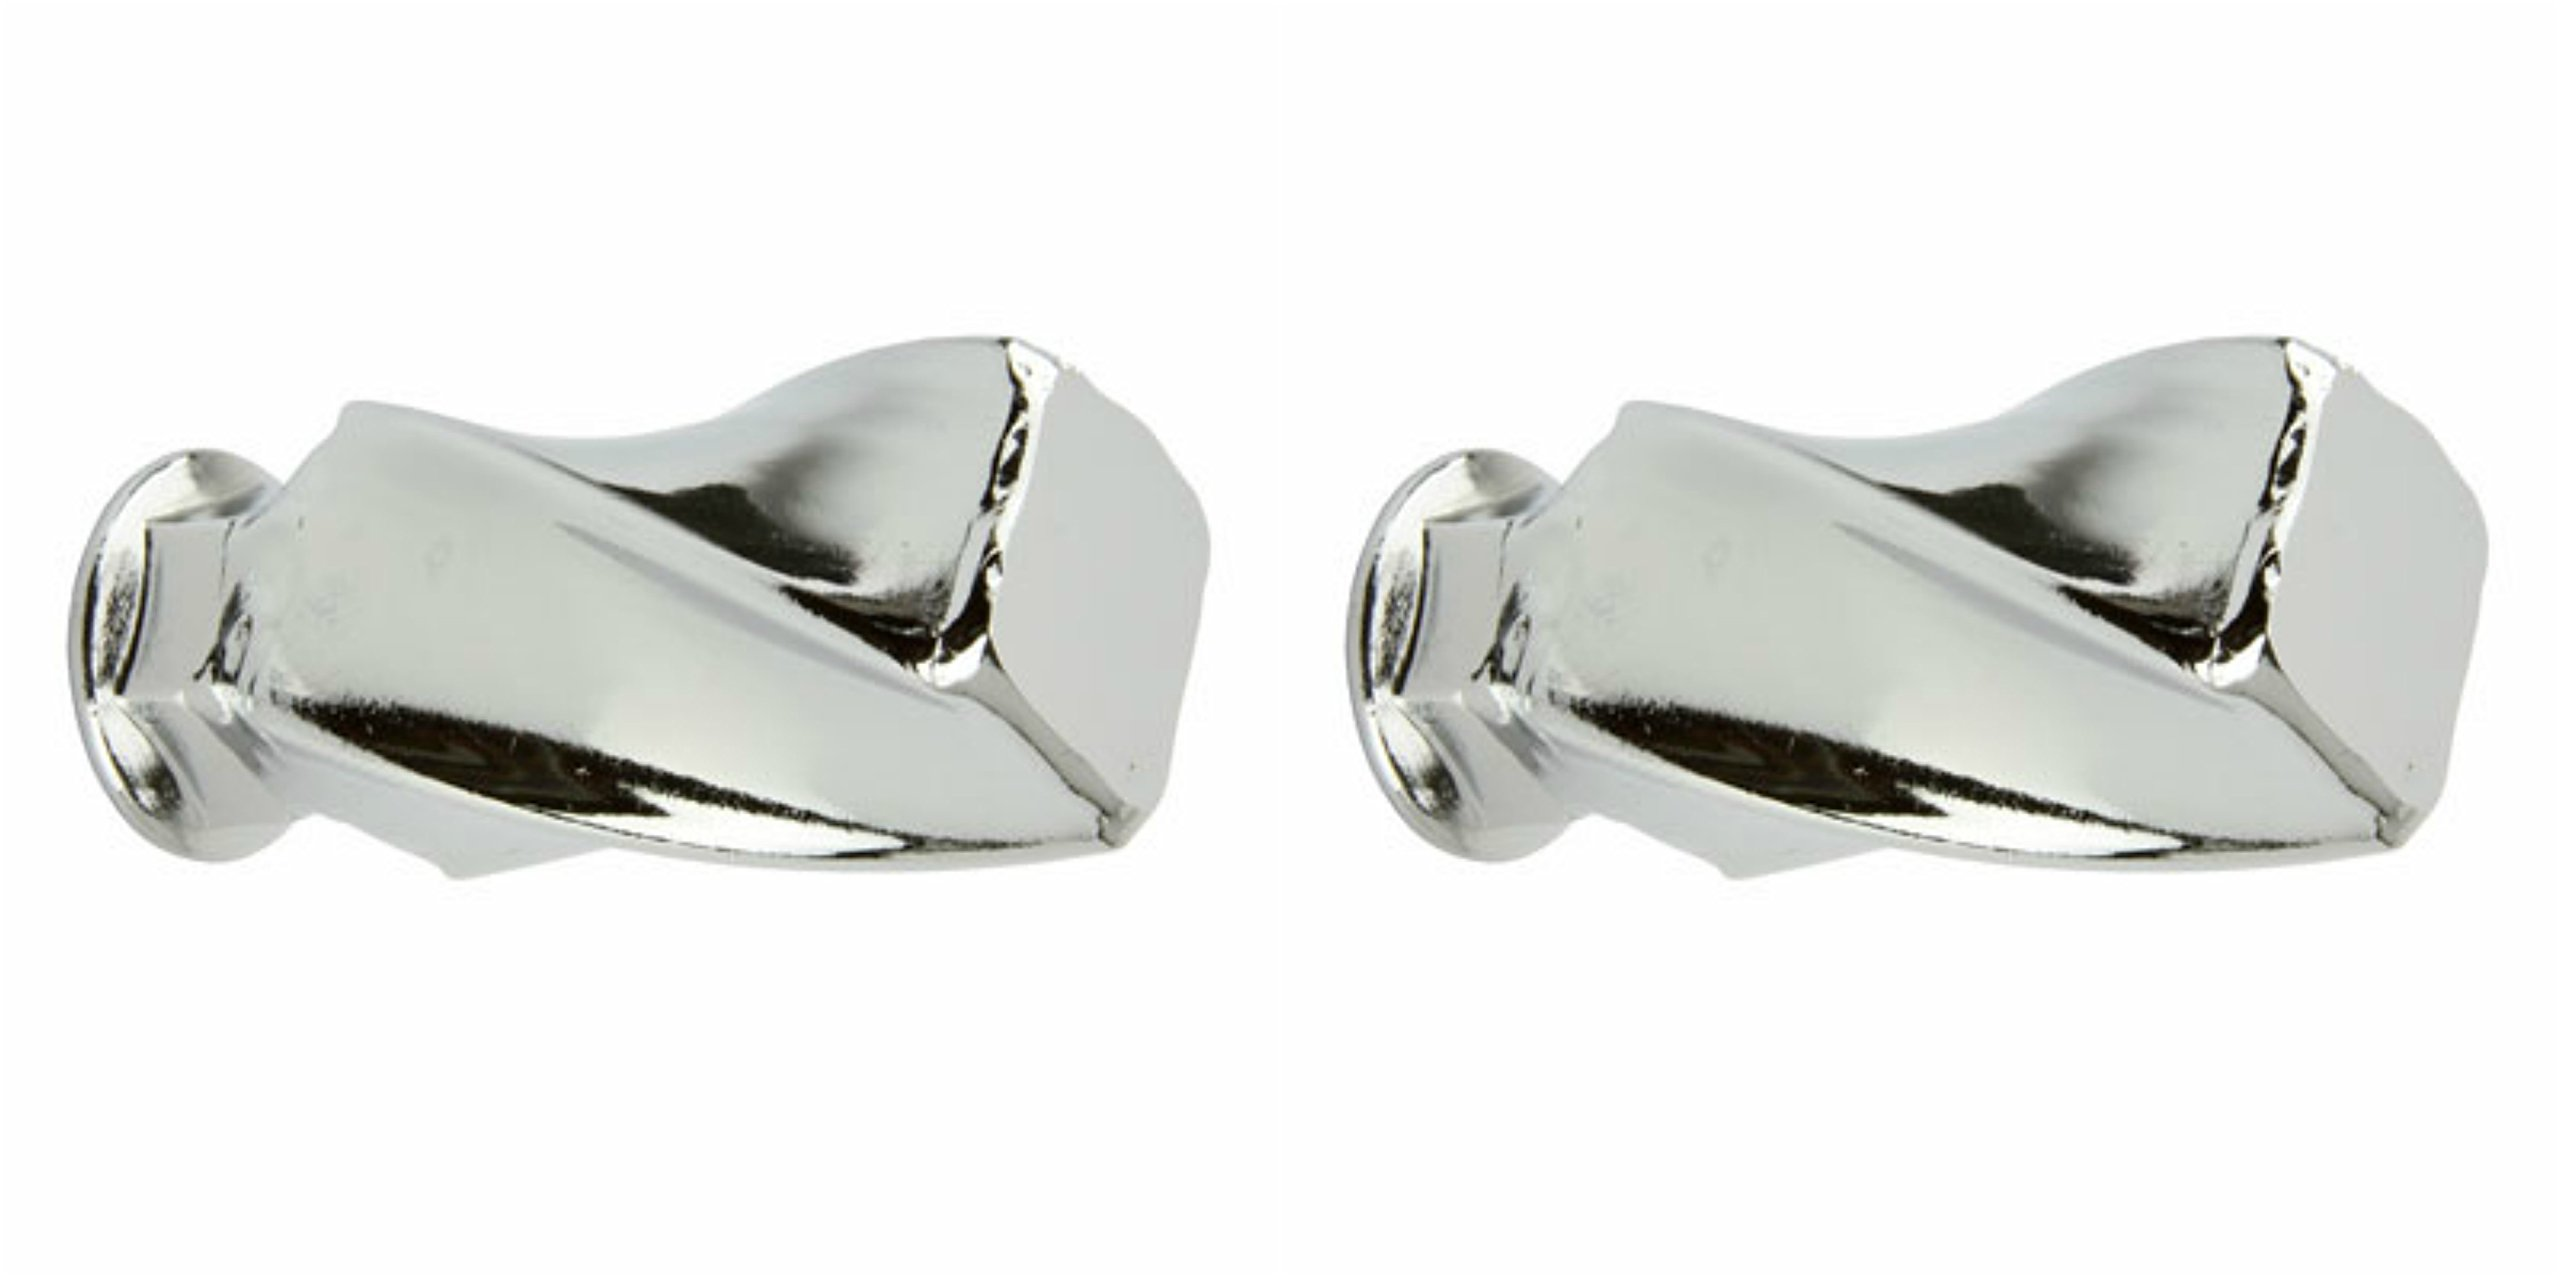 Lowrider 2 - Twisted Square Nuts 3/8 x 26t Chrome. Bicycle nut, bike nut, beach cruiser, chopper, mountain, limo